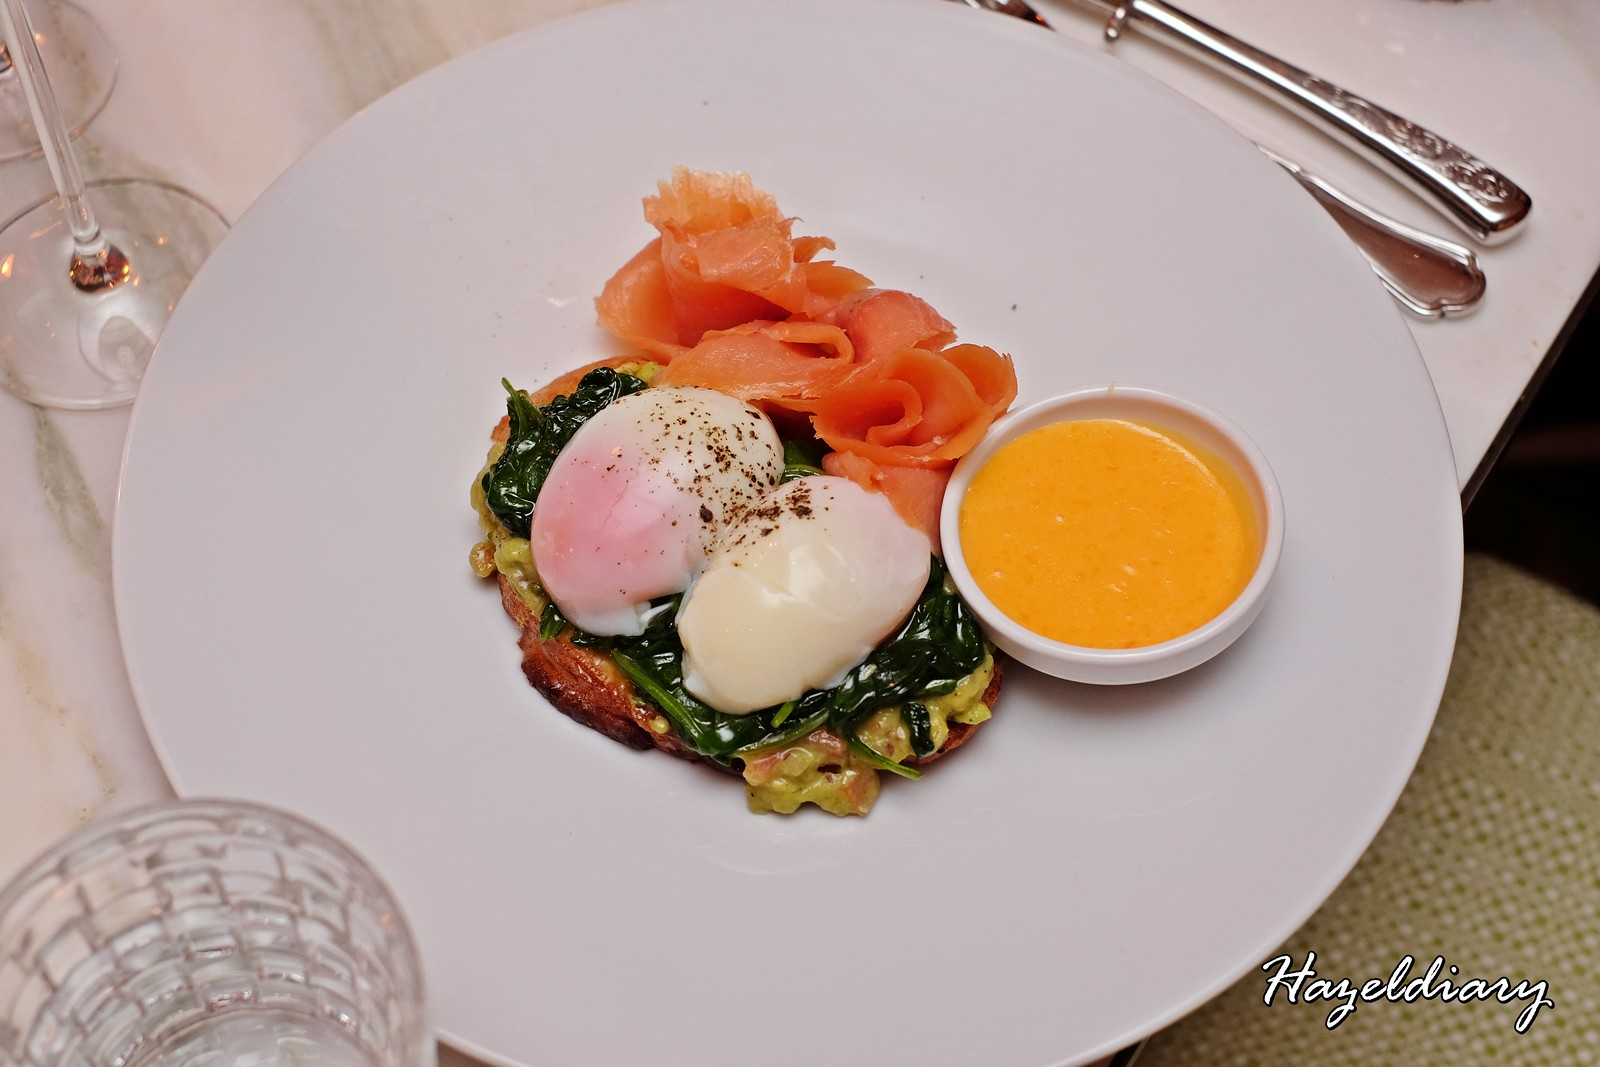 six Senses Brasserie -The Weekender's Brasserie Brunch-Egg benedicts